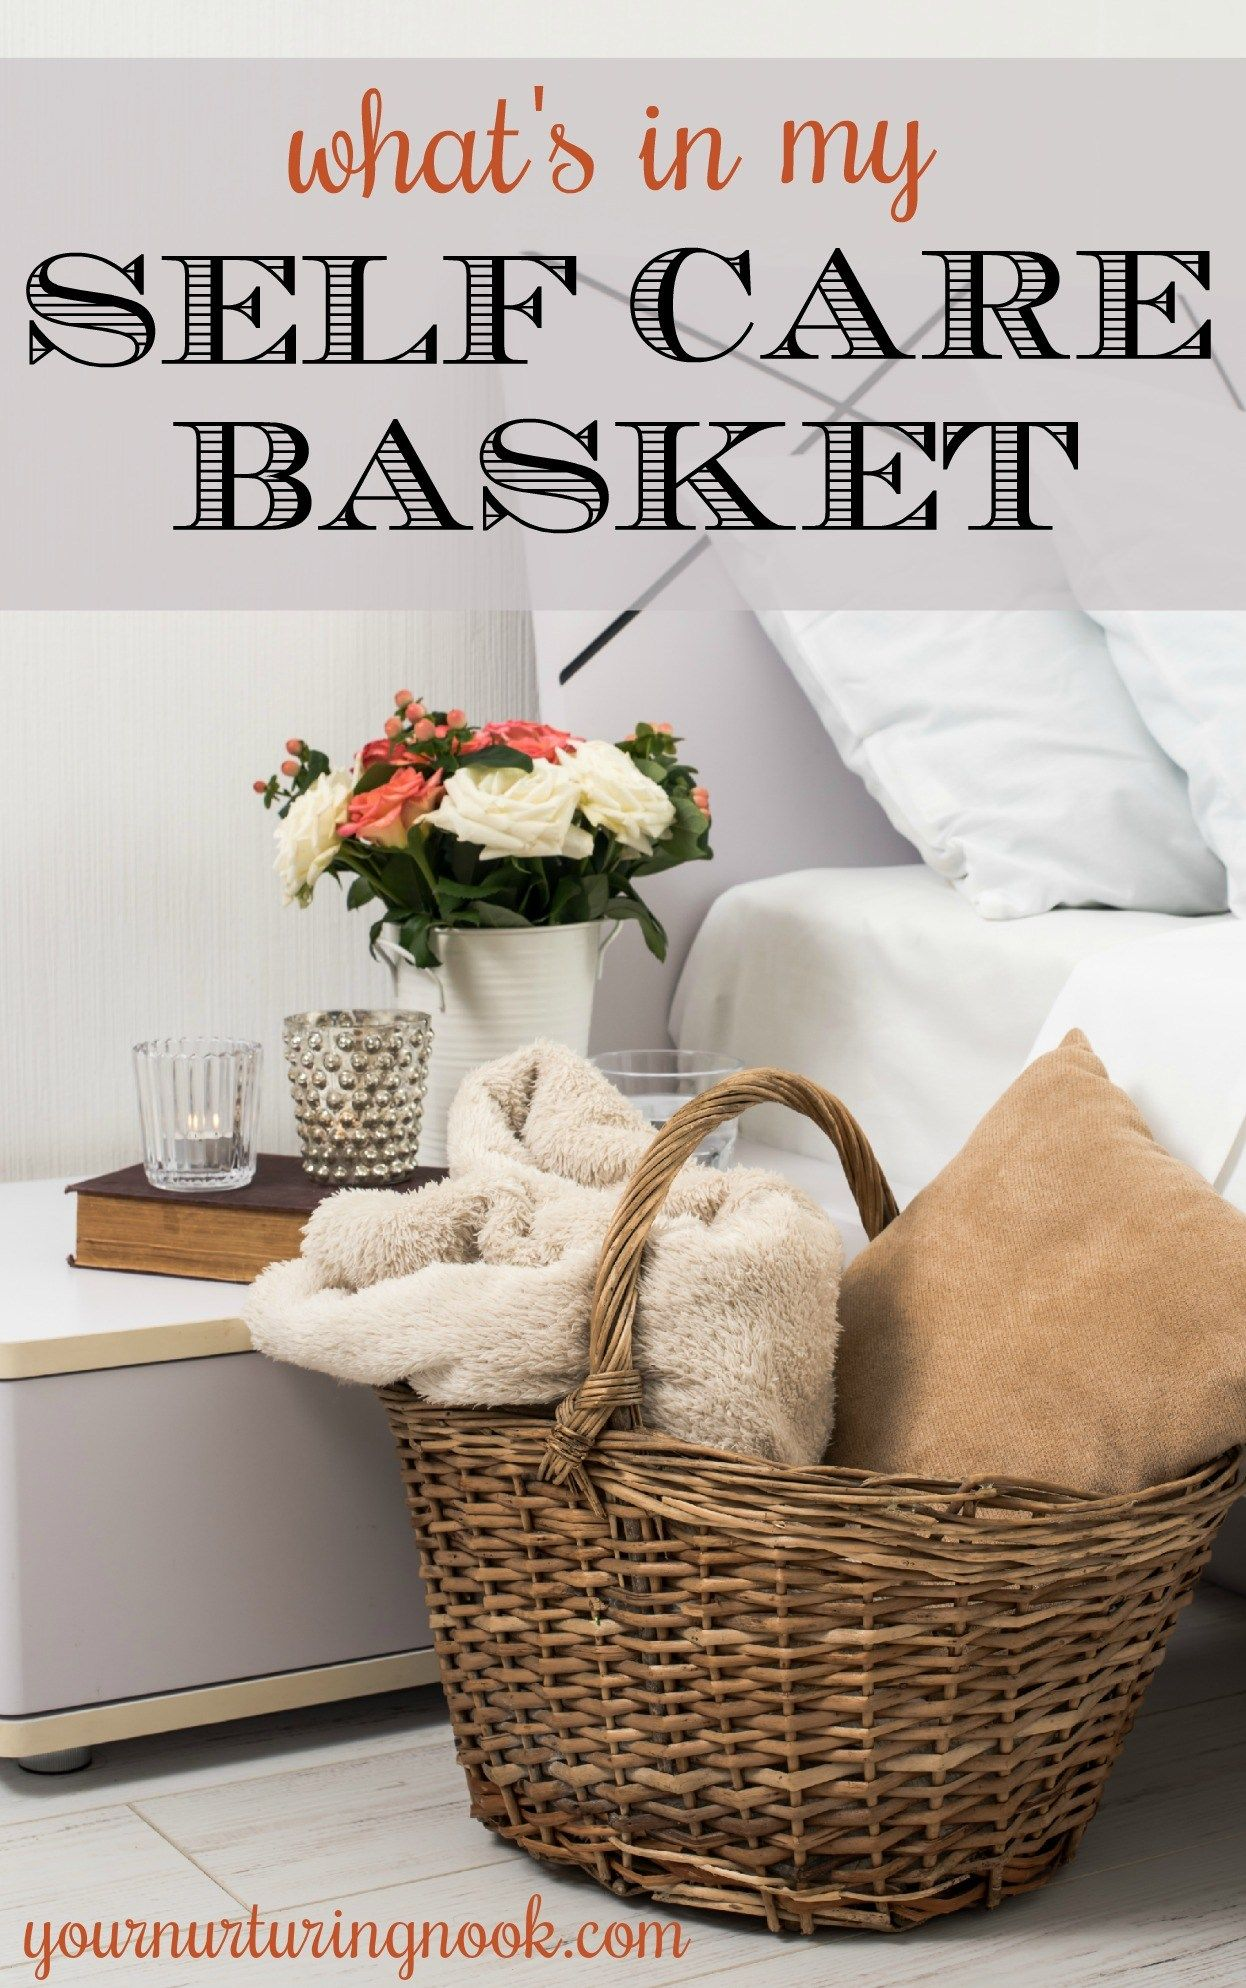 Find out whats in my self care basket for moms care